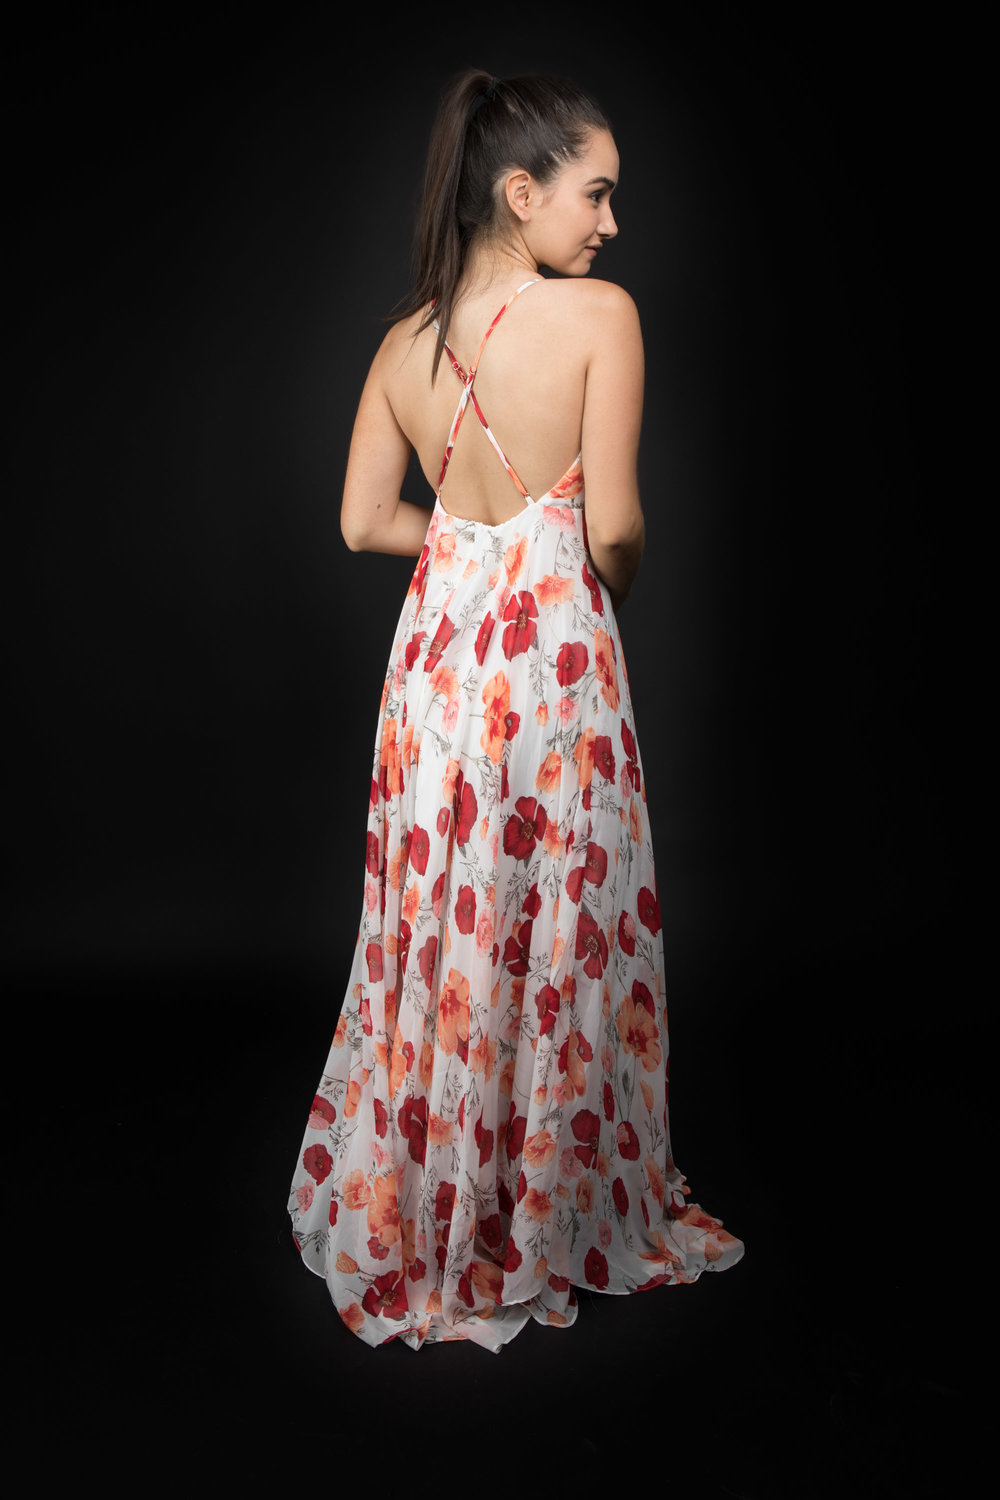 Rose Couture-22.jpg